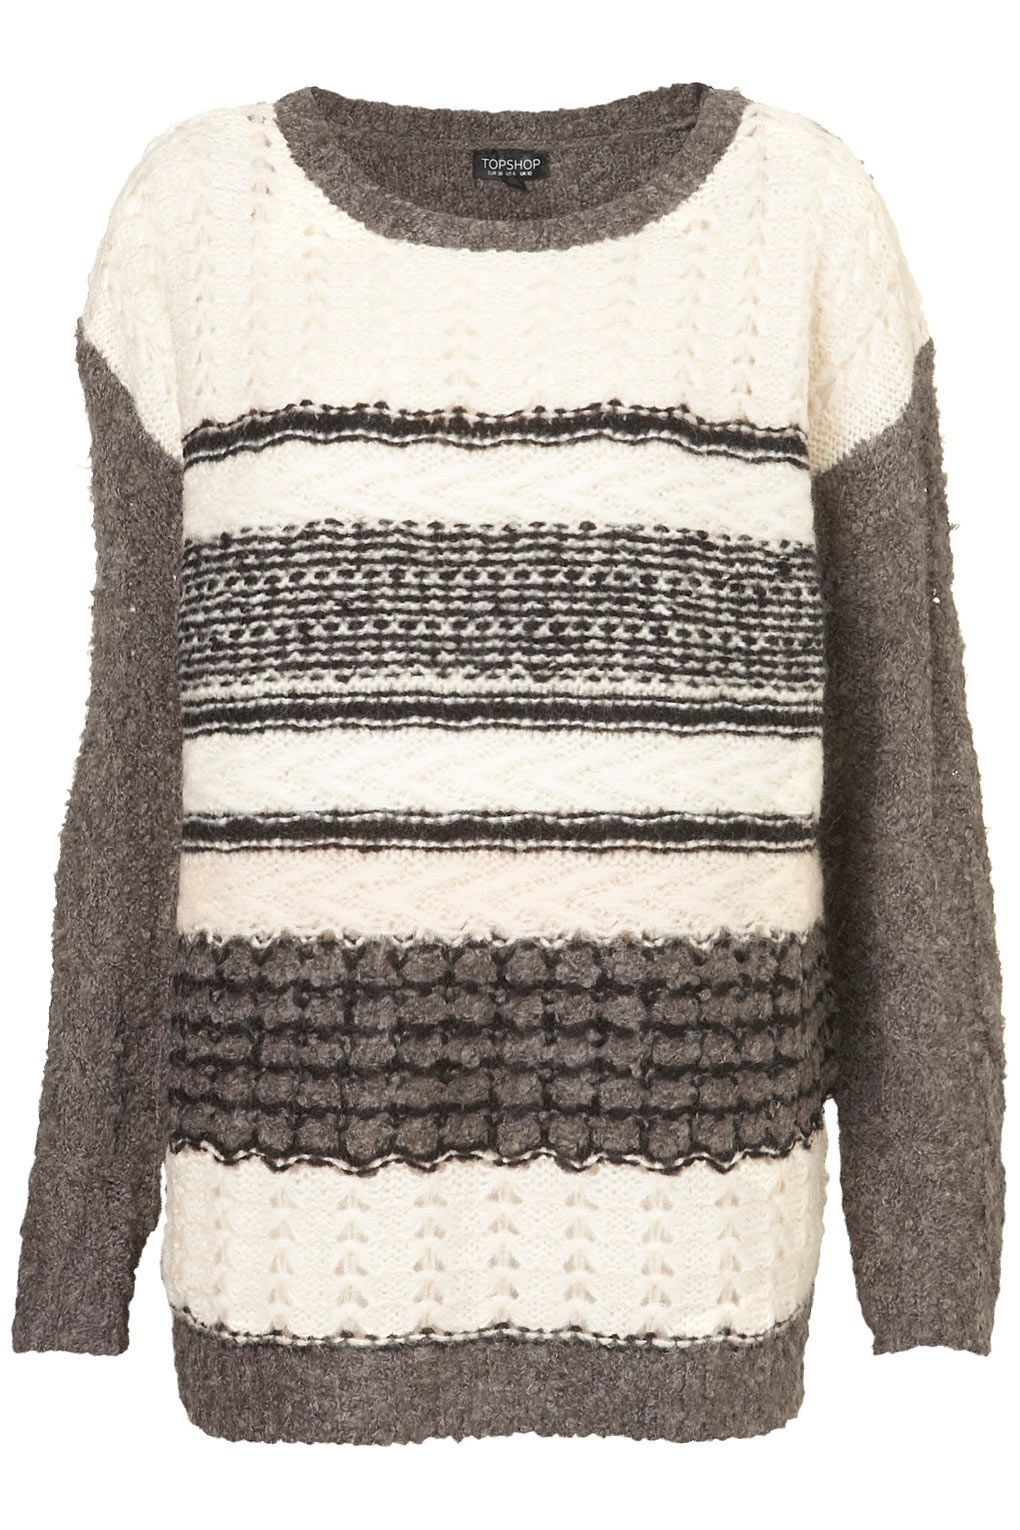 Beat the season s chilly temperatures in a stylish knit number that s  snugly and stylish. 8dfd60b06